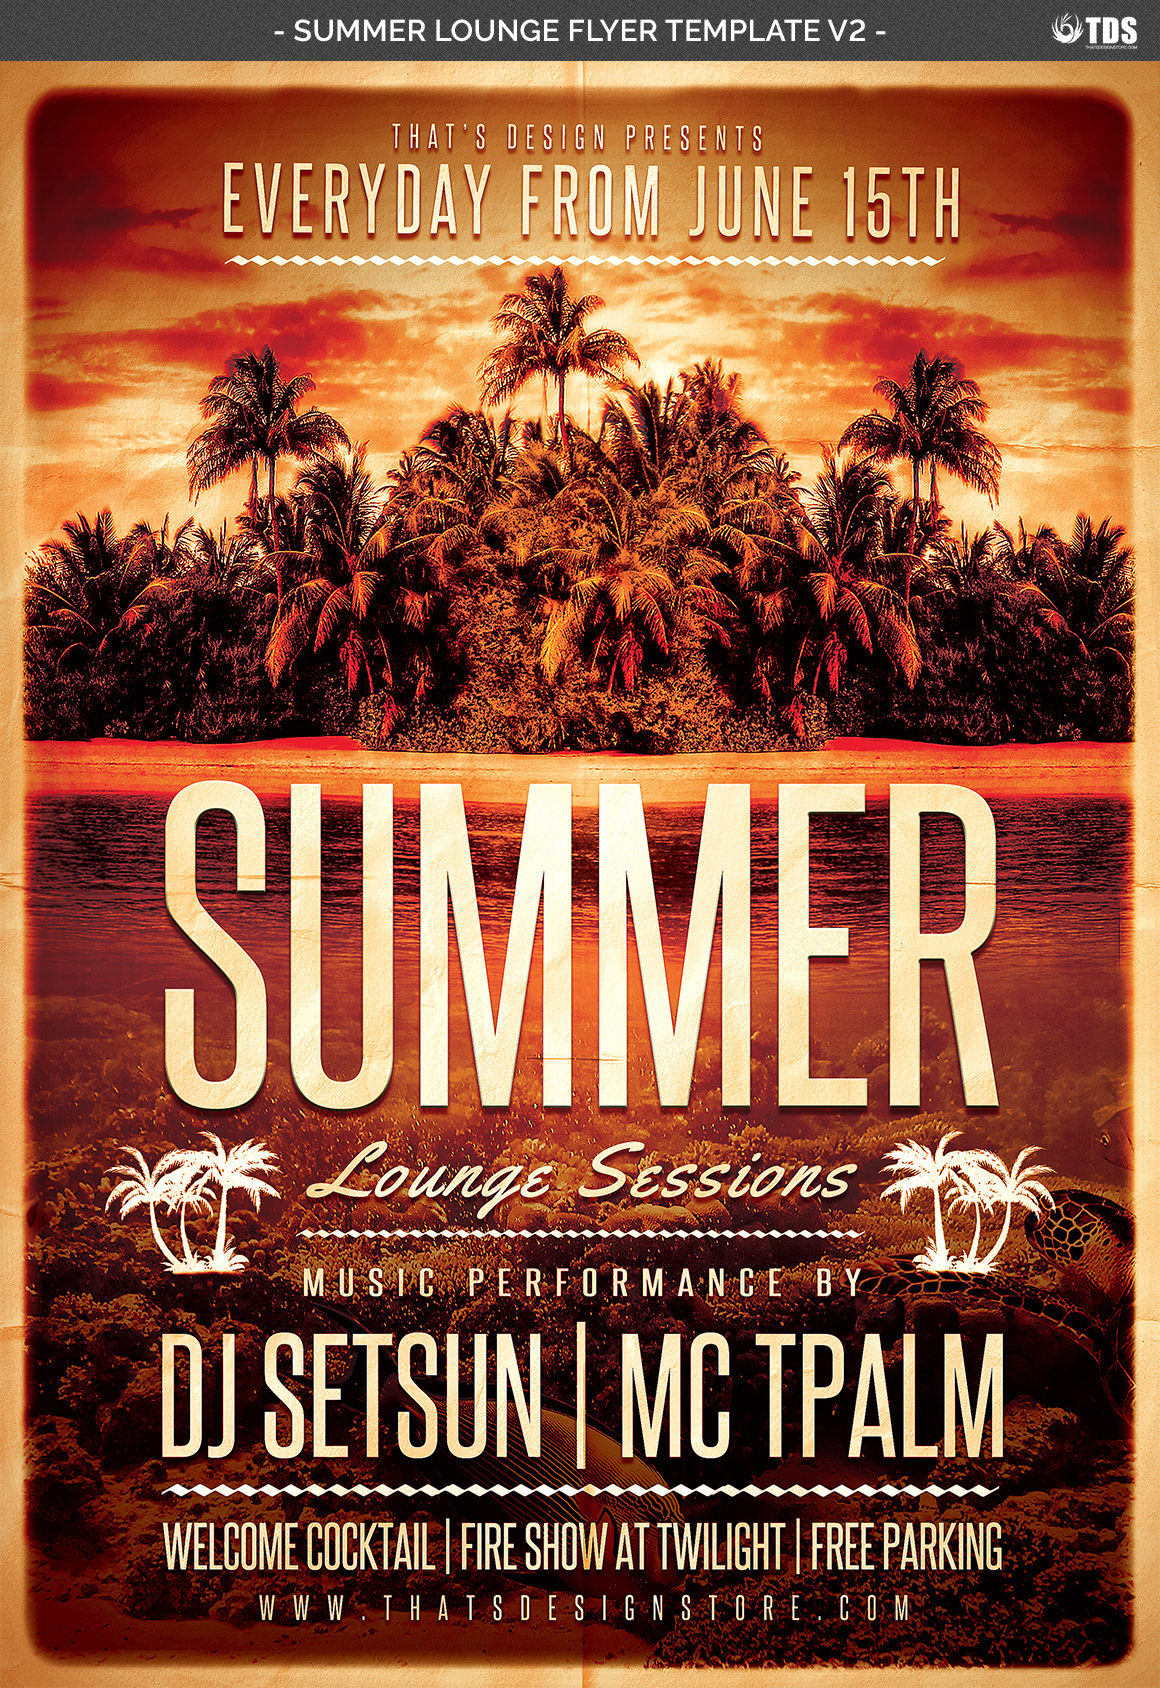 Summer Lounge Flyer Template V2 example image 4